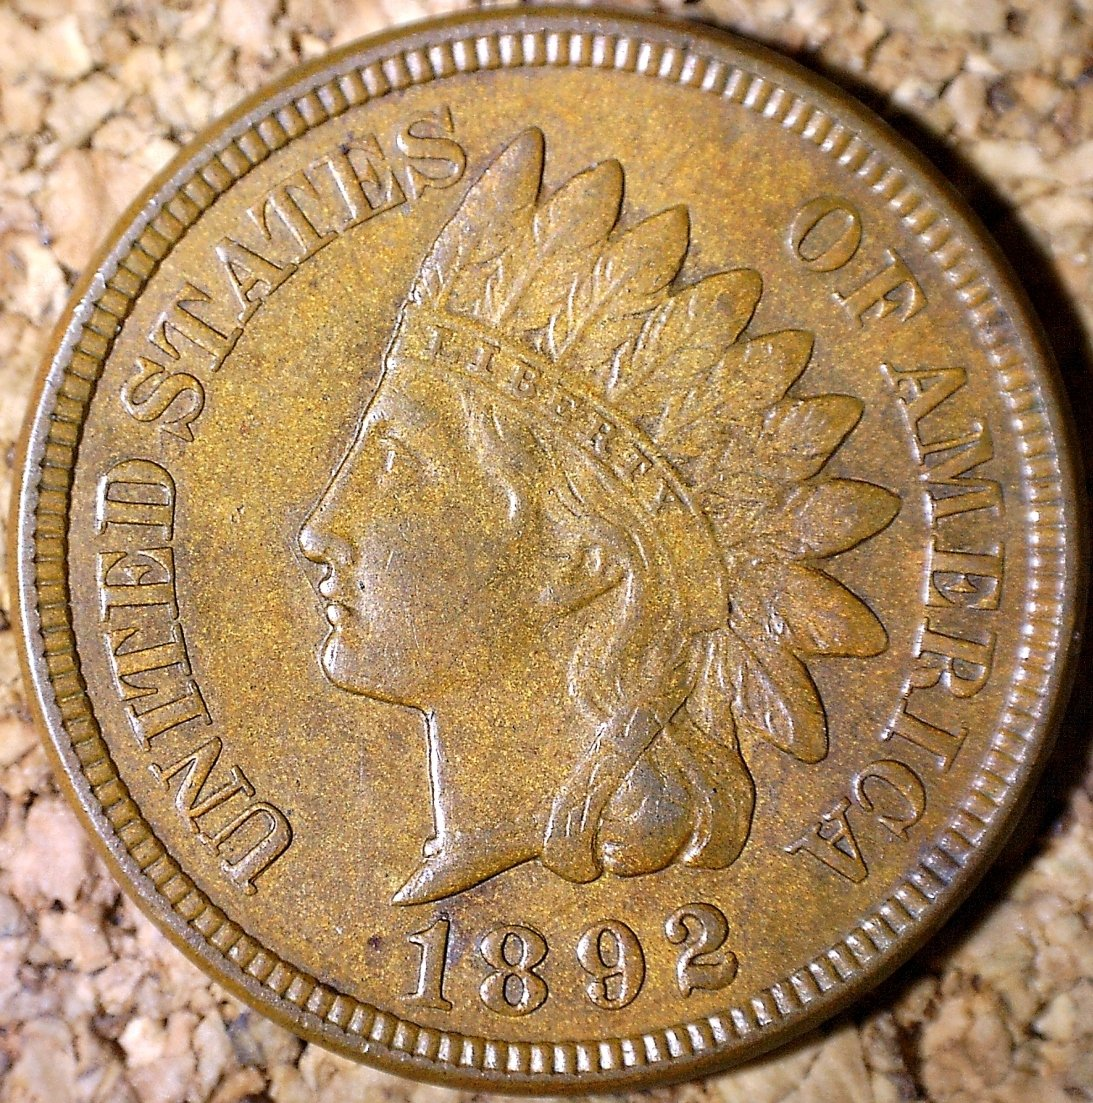 1892 RPD-001 - Indian Head Penny - Photo by David Killough